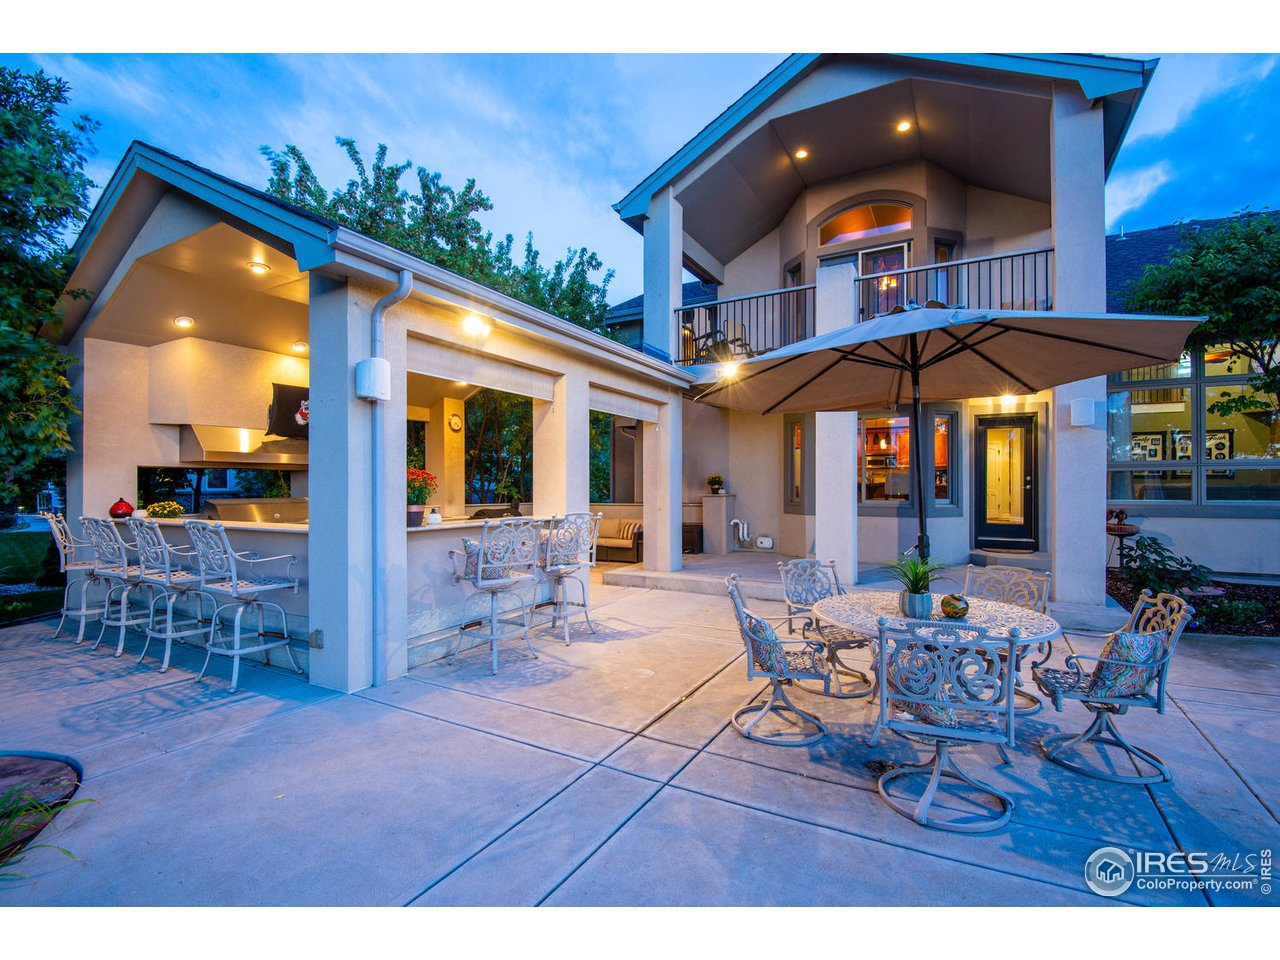 Expansive patio with exterior kitchen